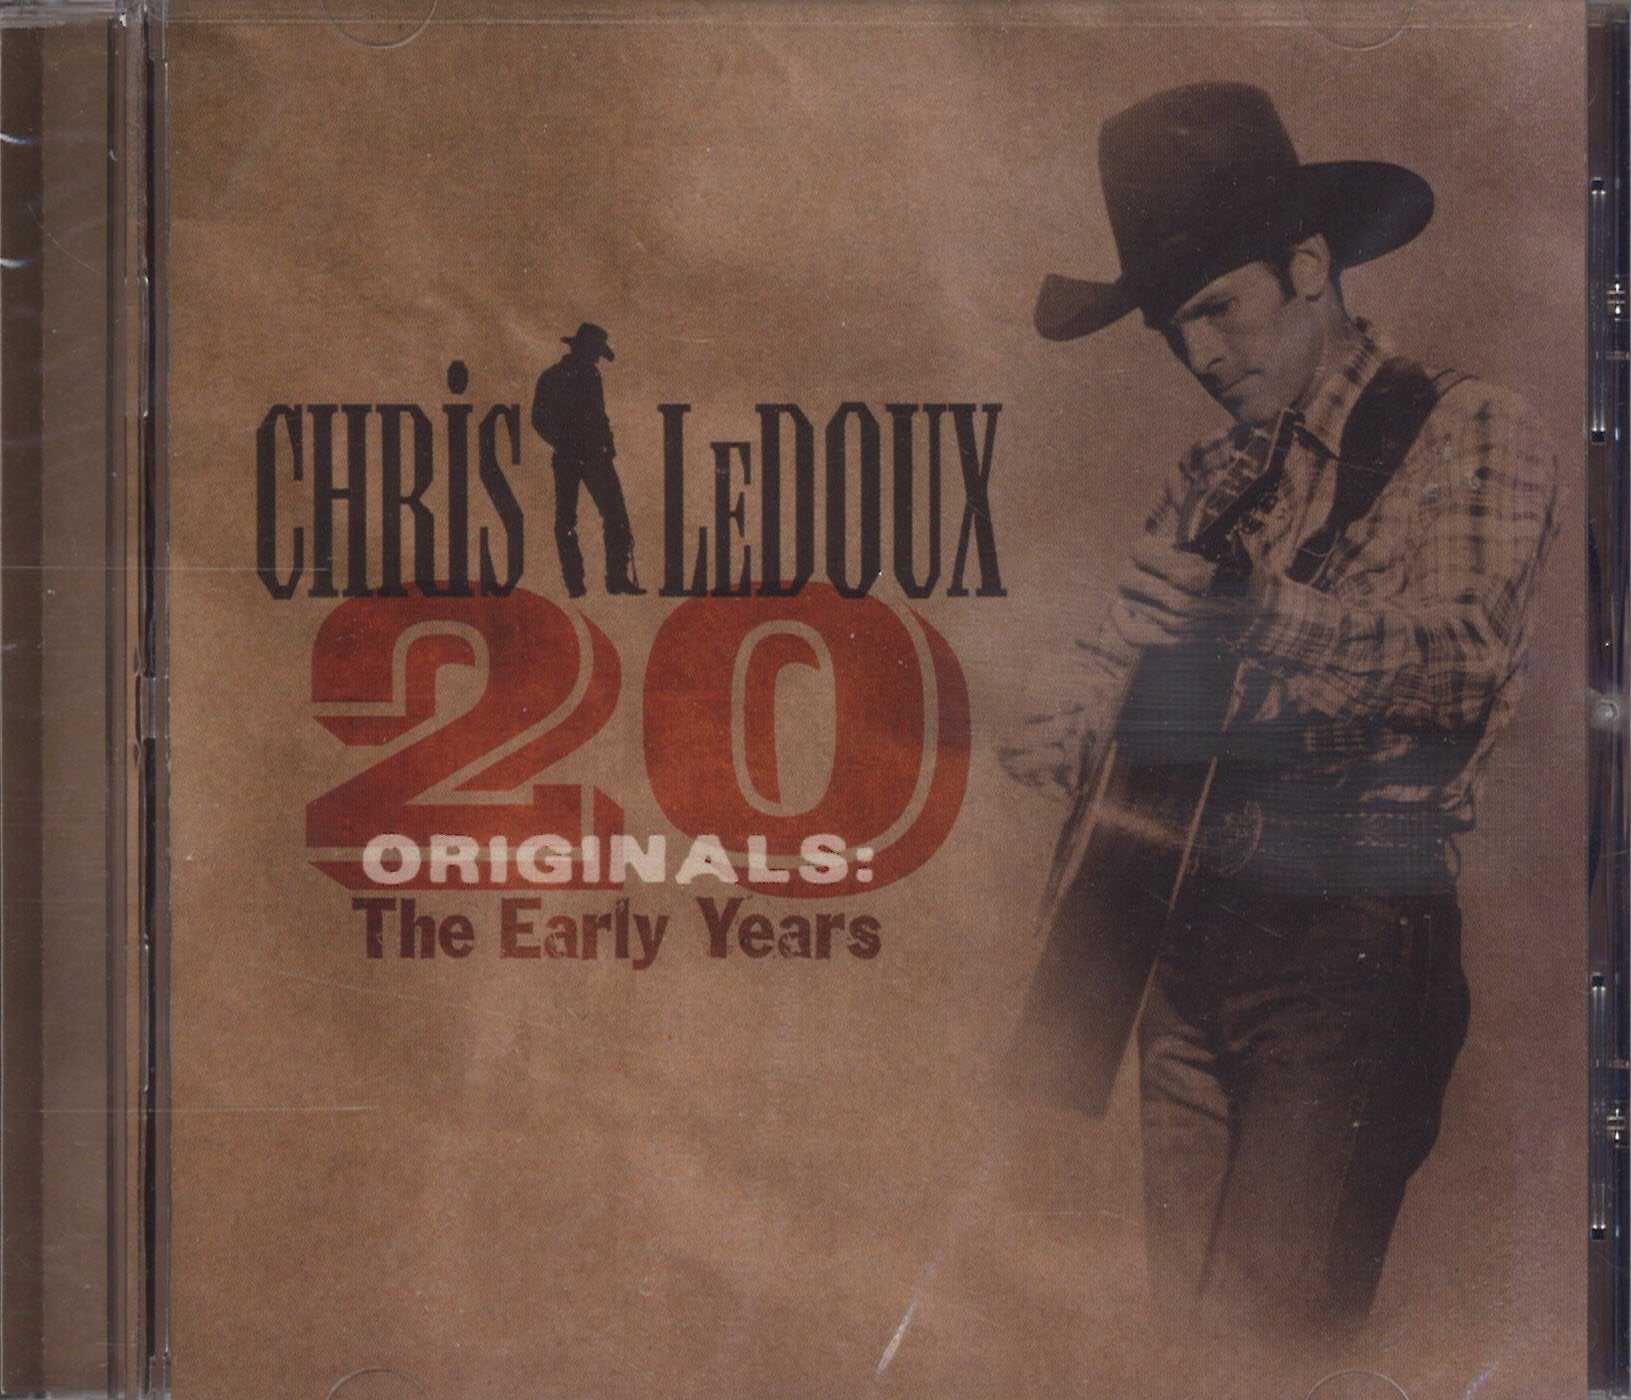 Chris Ledoux 20 Originals: The Early Years